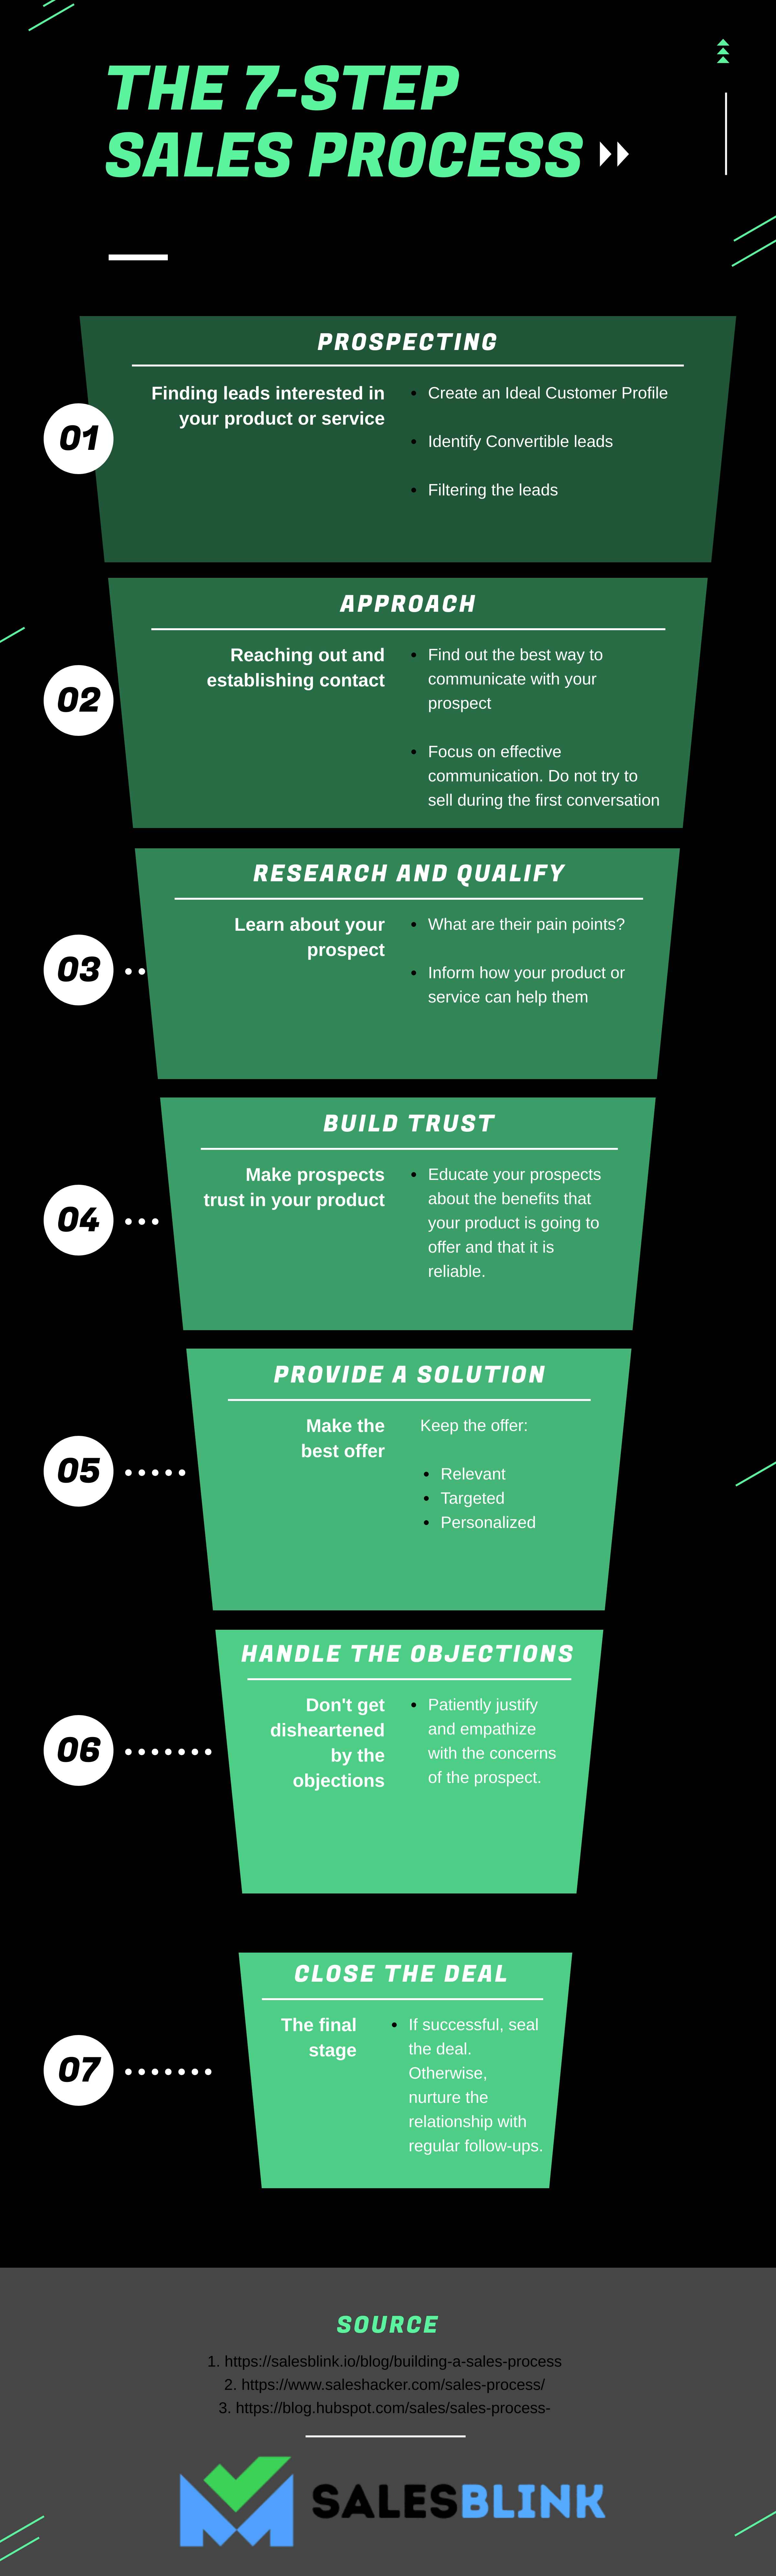 infographic showing the 7-step sales process